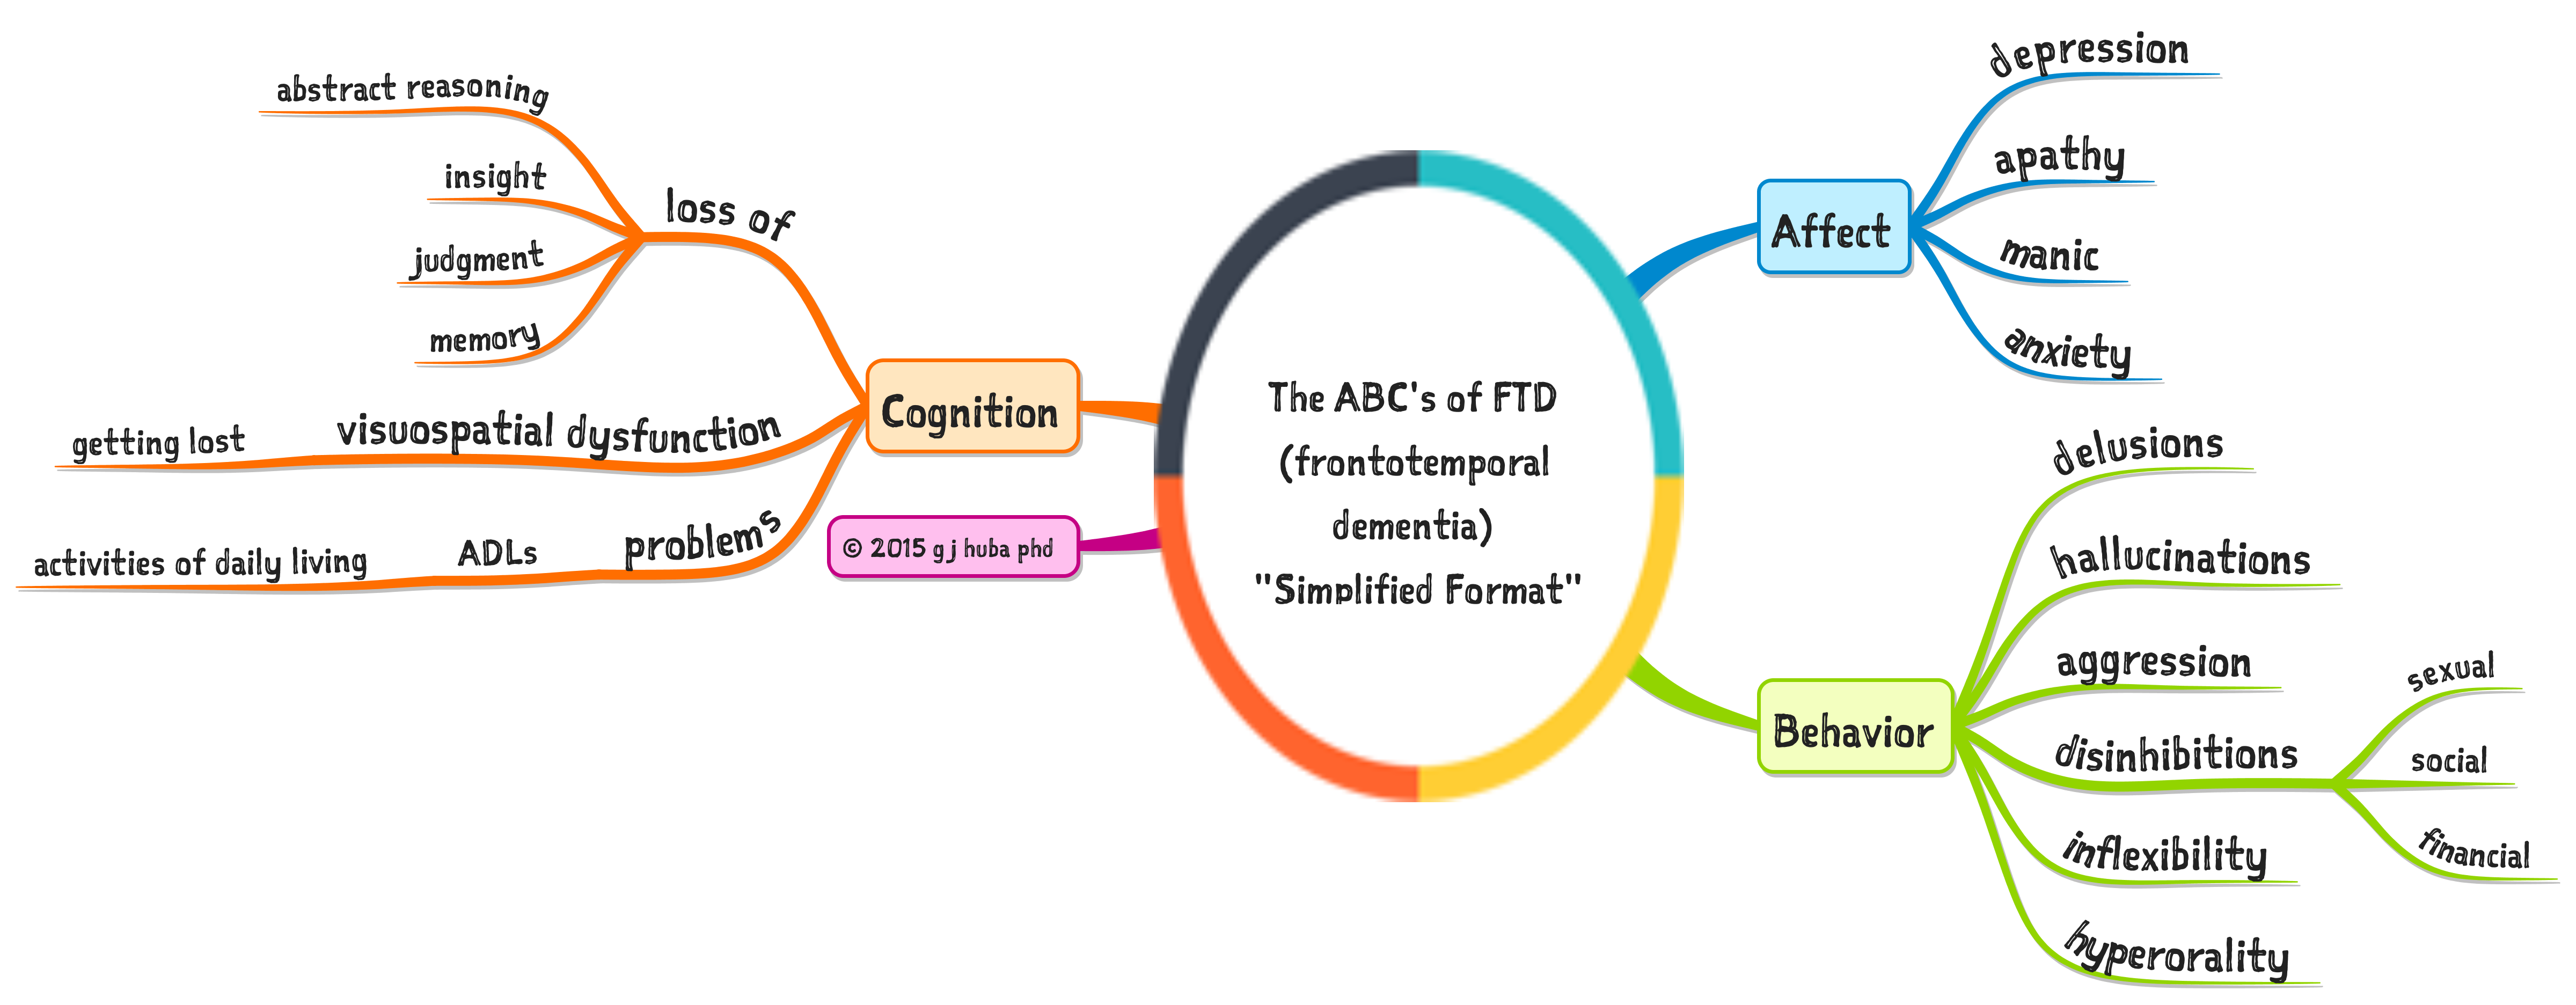 The ABC's of FTD (frontotemporal dementia) Simplified Format